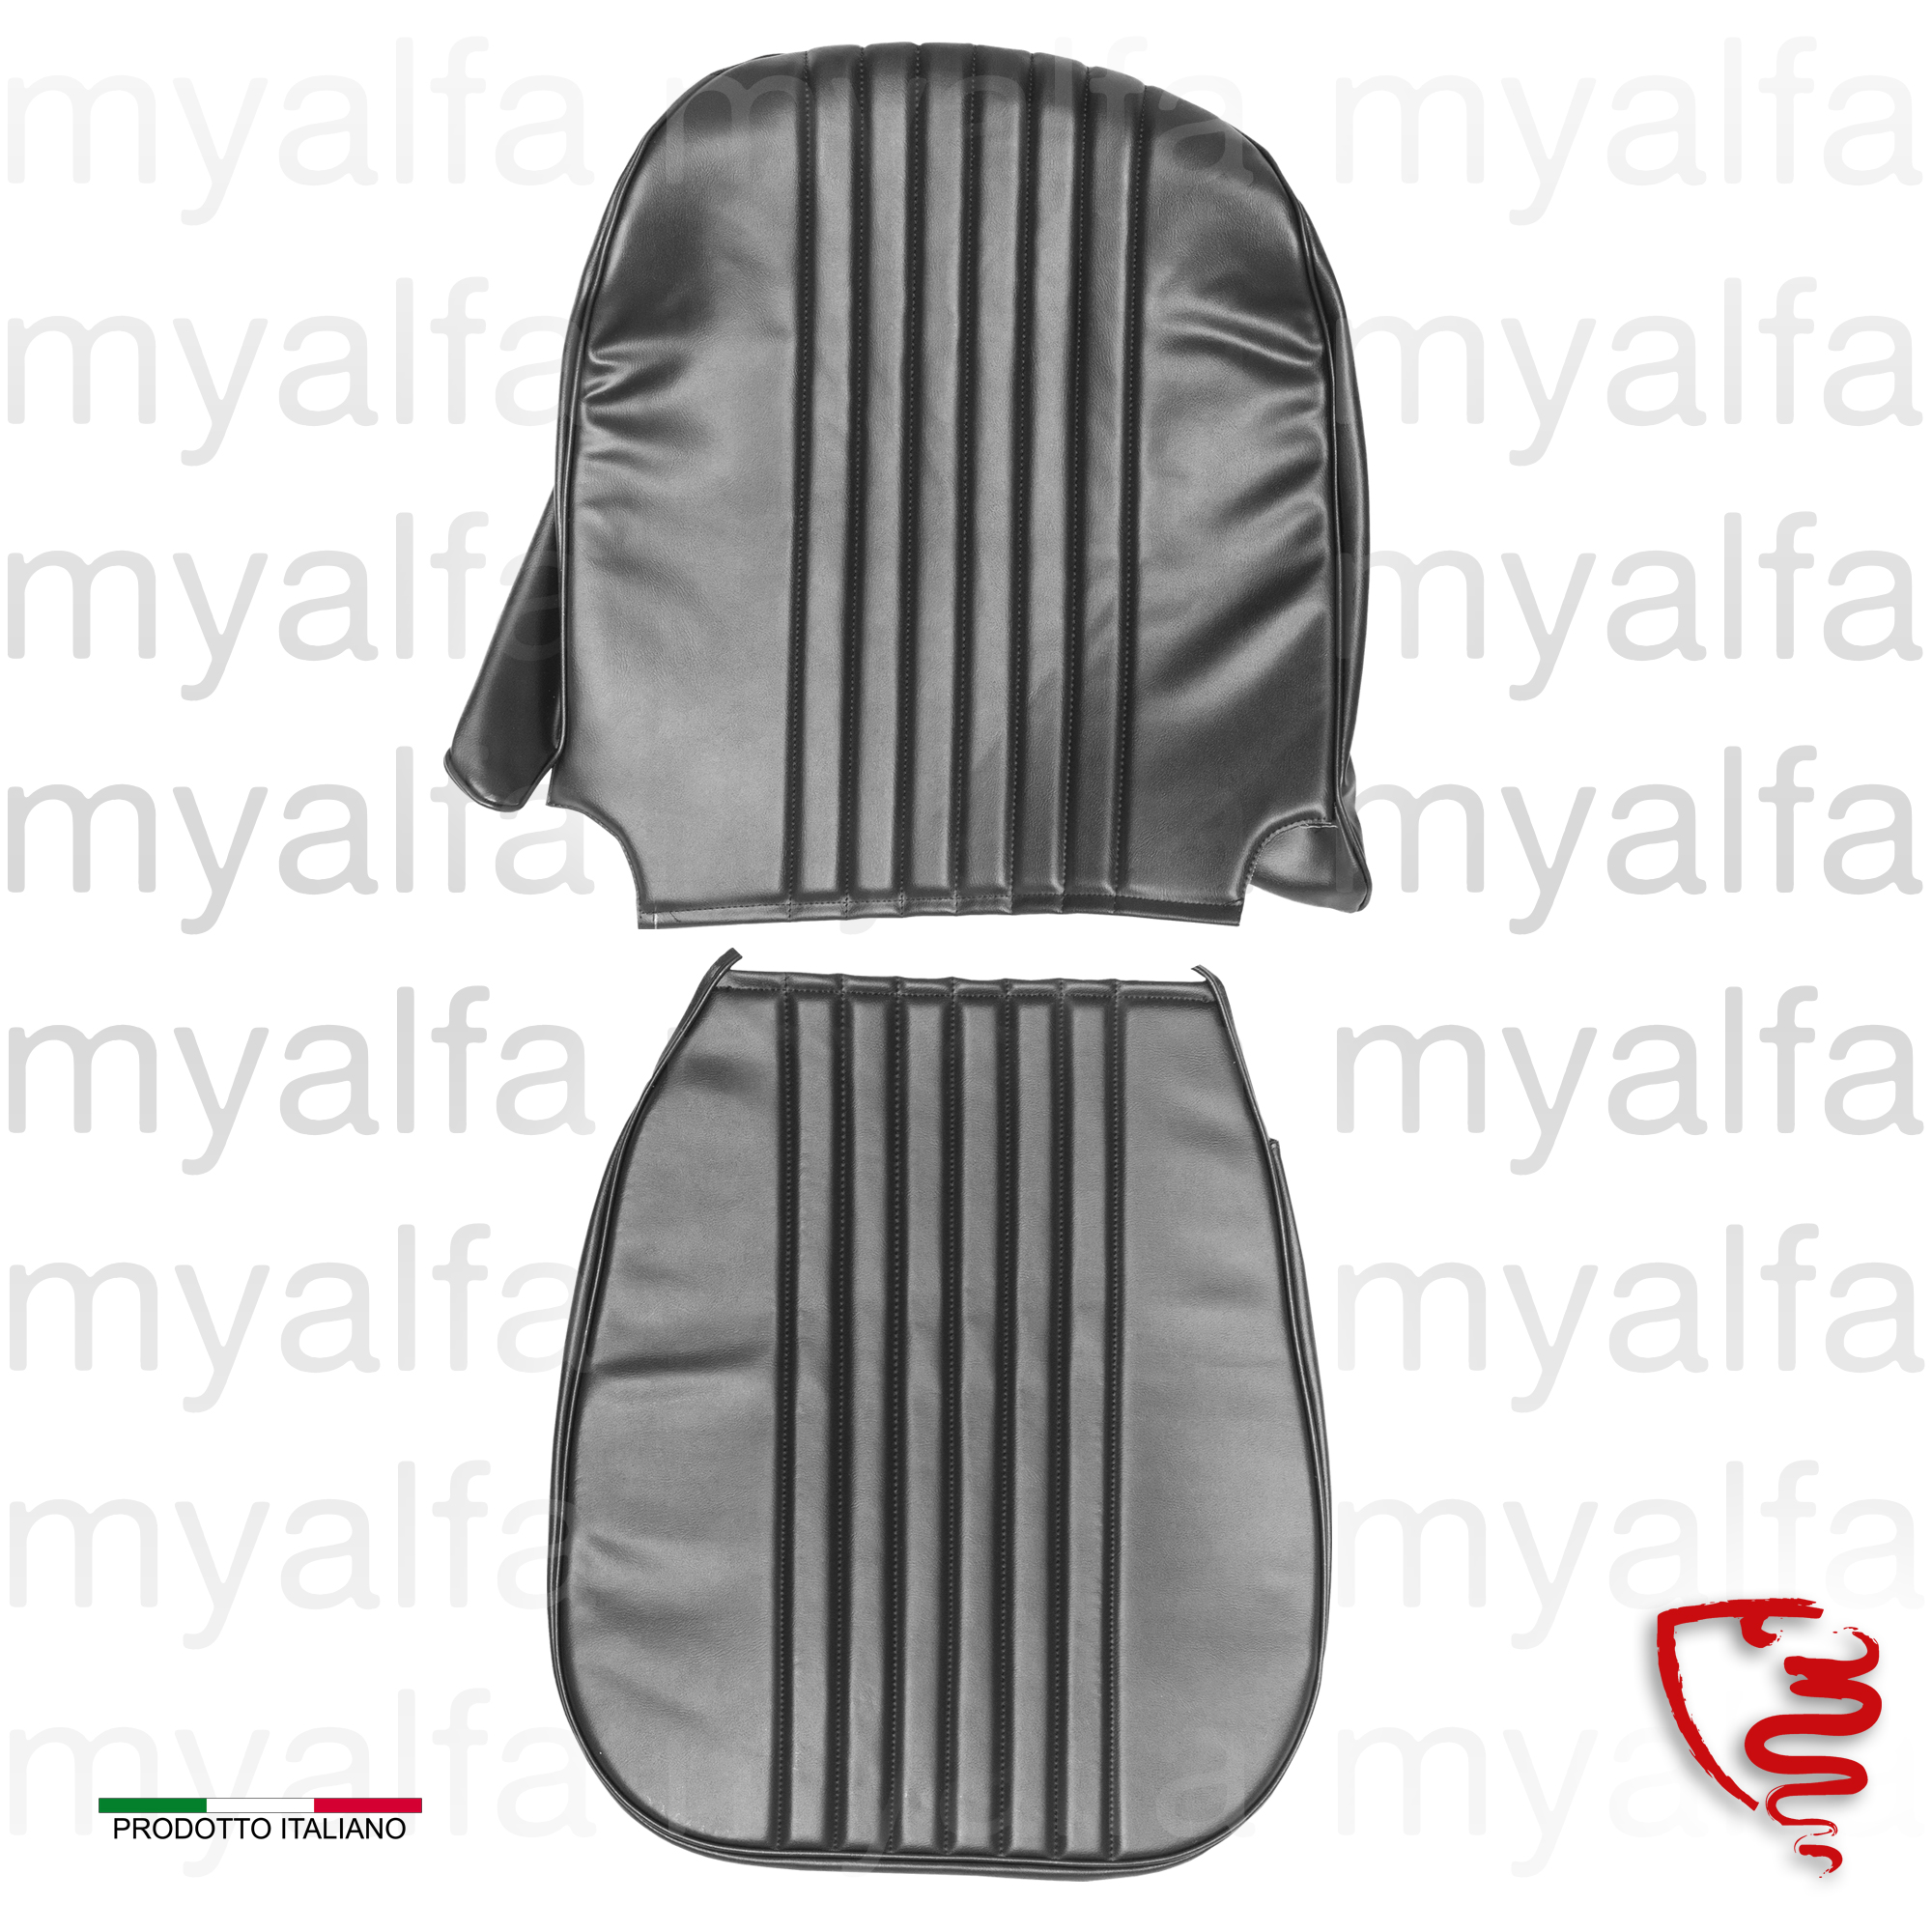 Jg. covers left bank. GT Junior 1300/1600 - Black for 105/115, Coupe, Junior, Interior, Seats, Seat covers